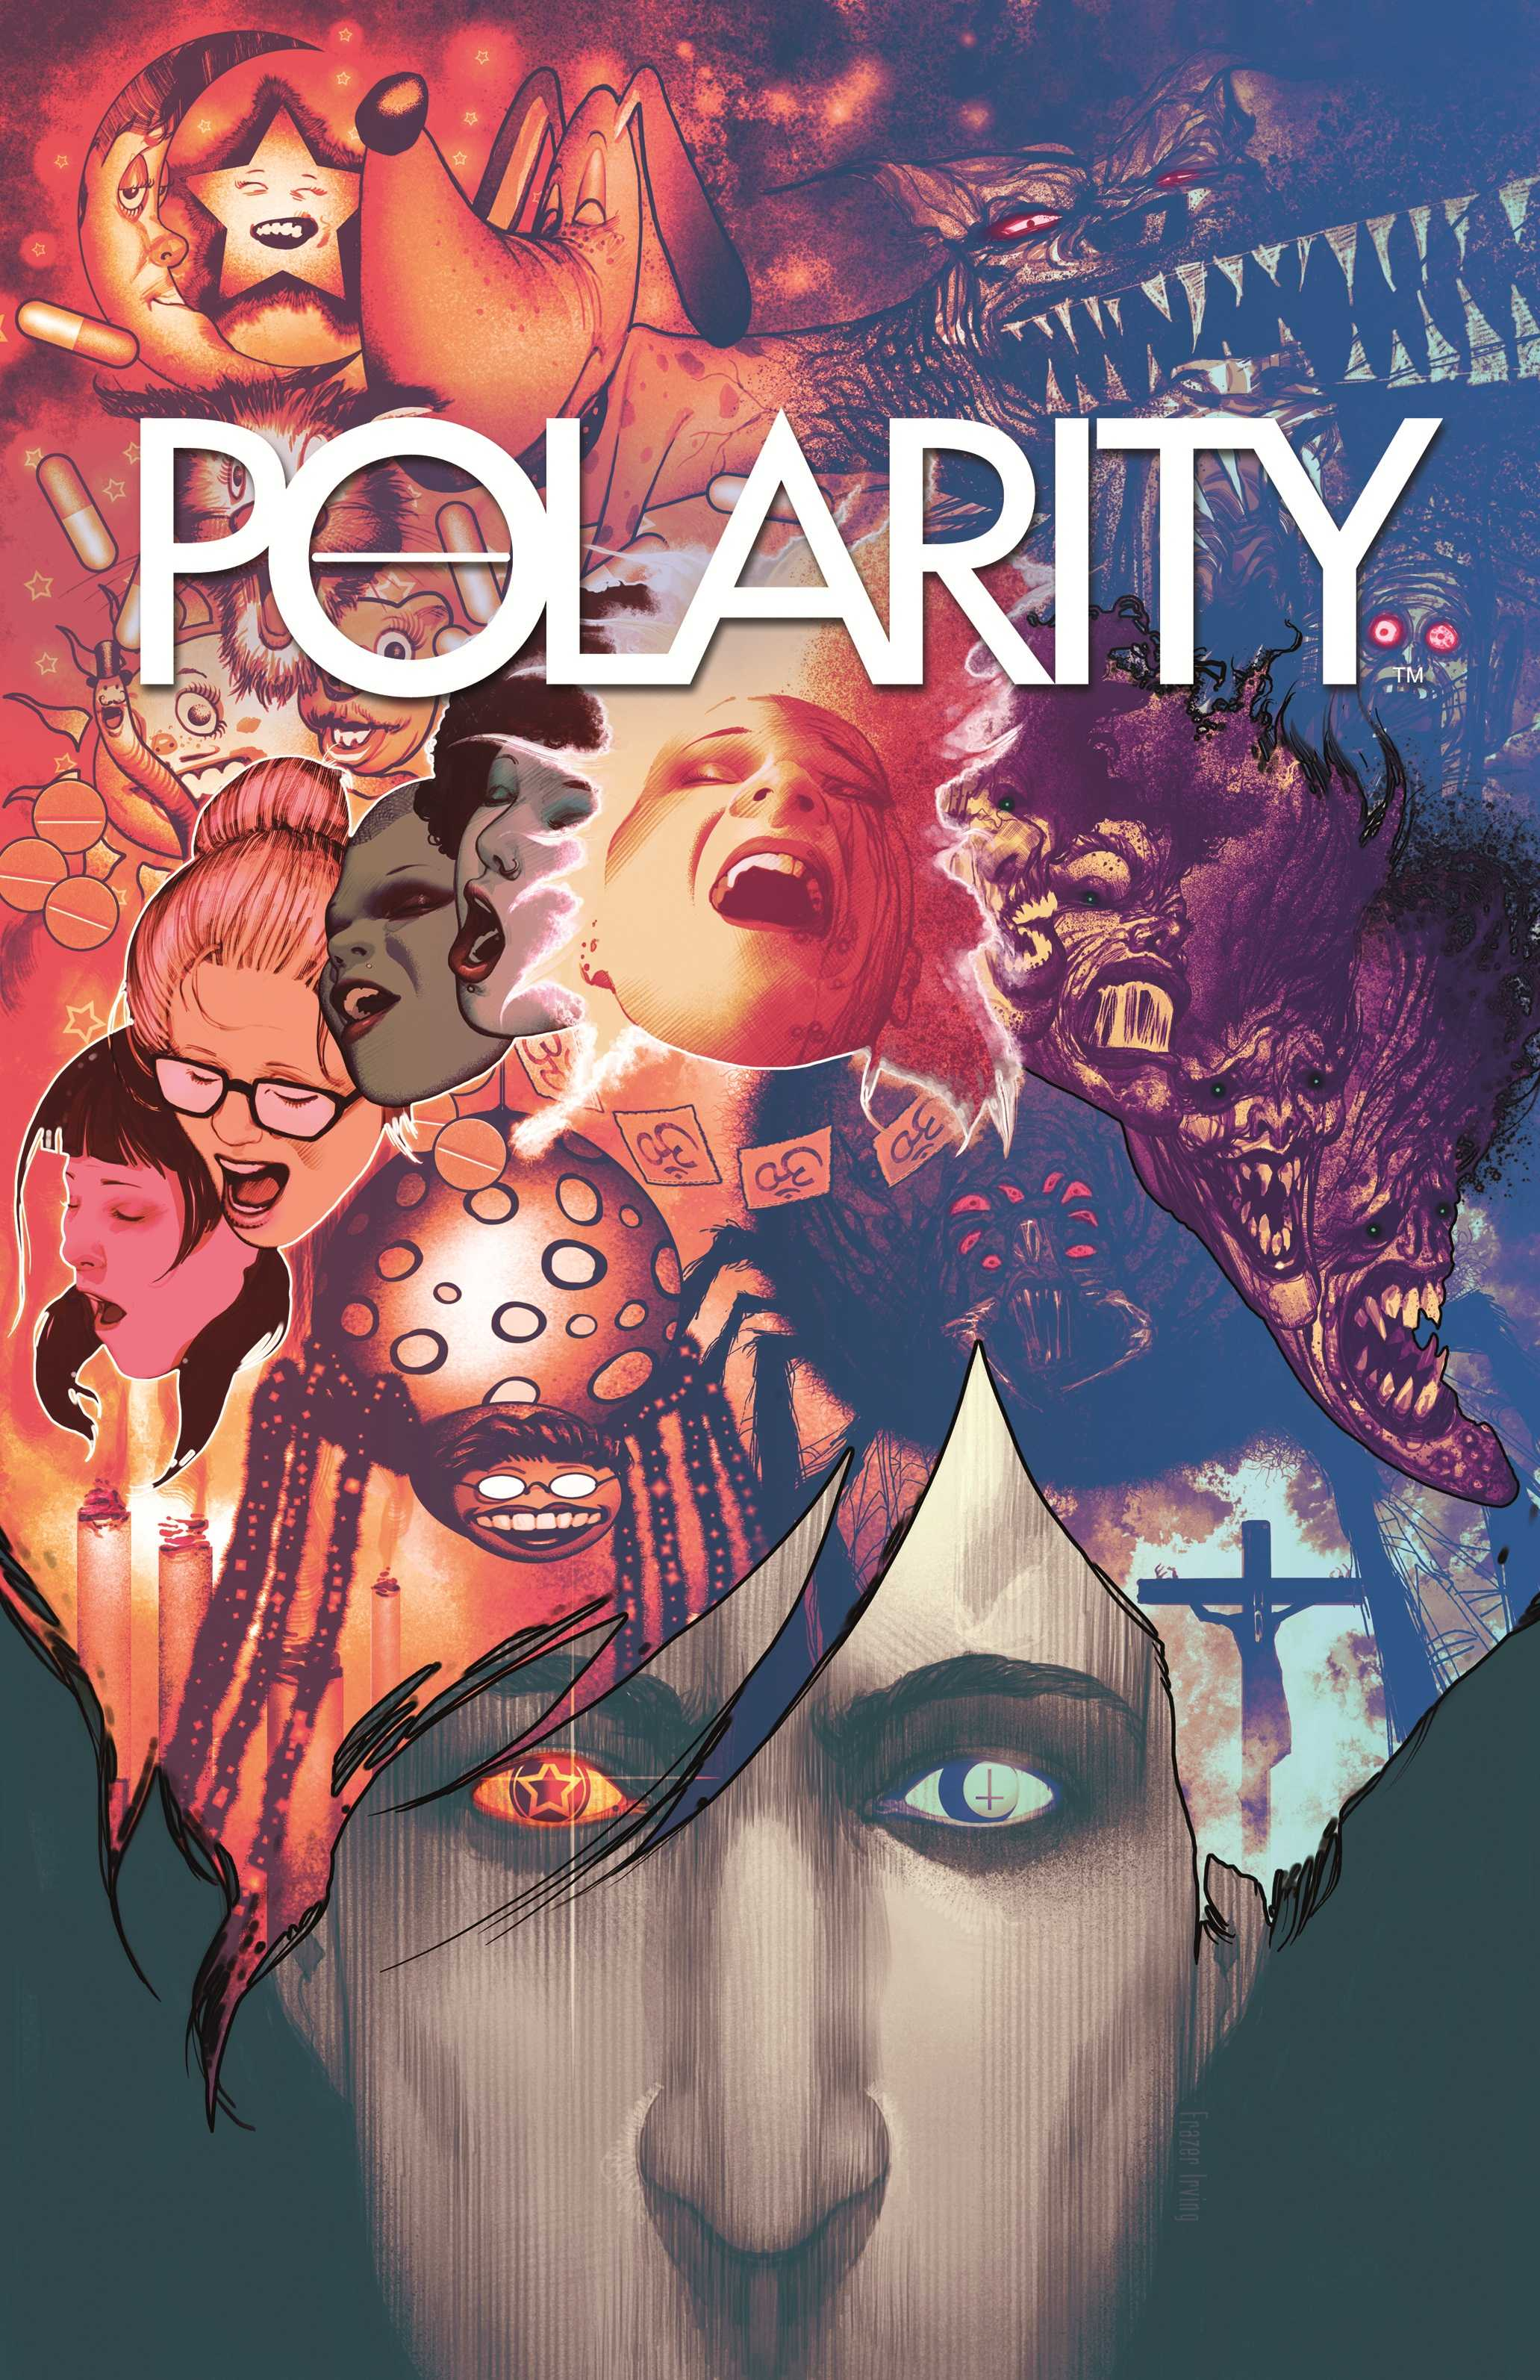 Polarity-9781608863464_hr